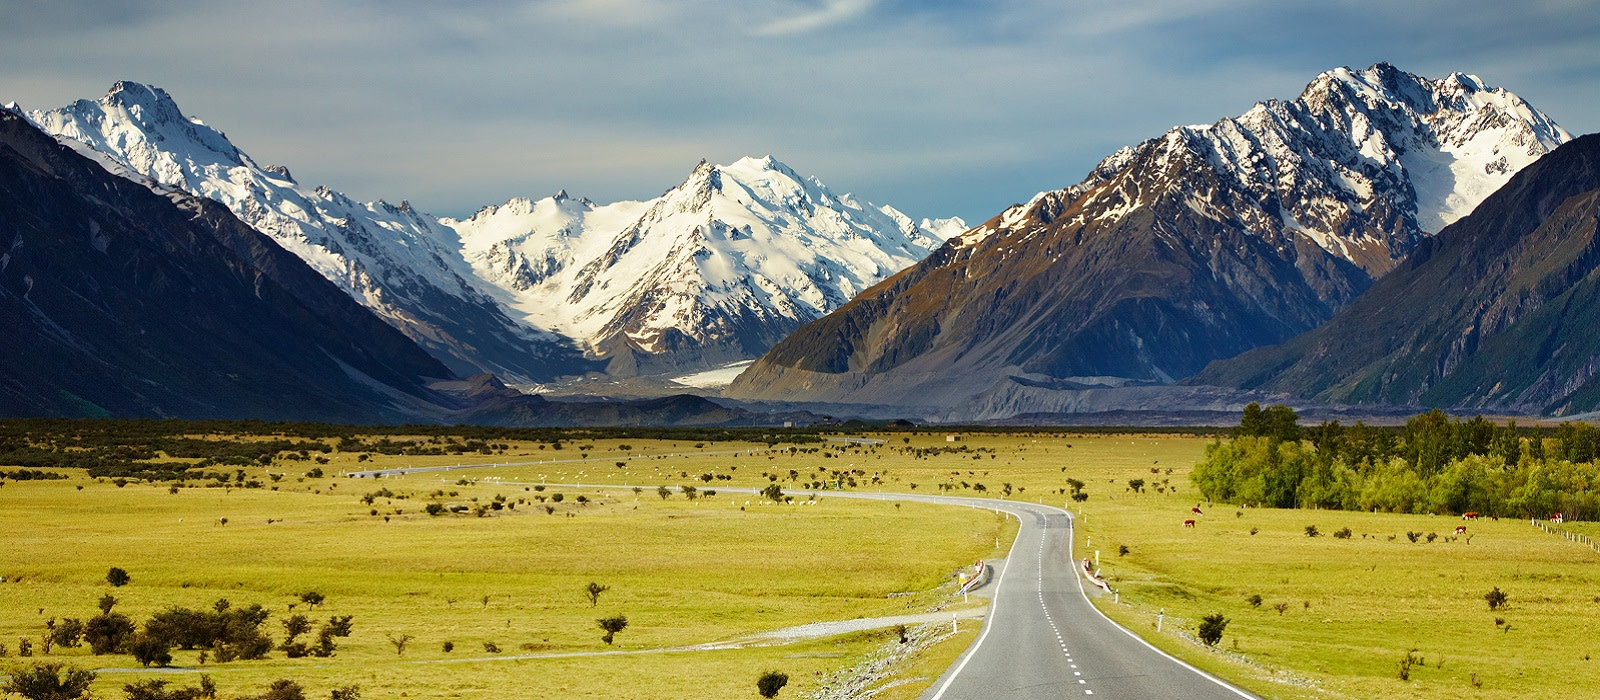 New Zealand: Landscapes, Culture and Beach Tour Trip 1